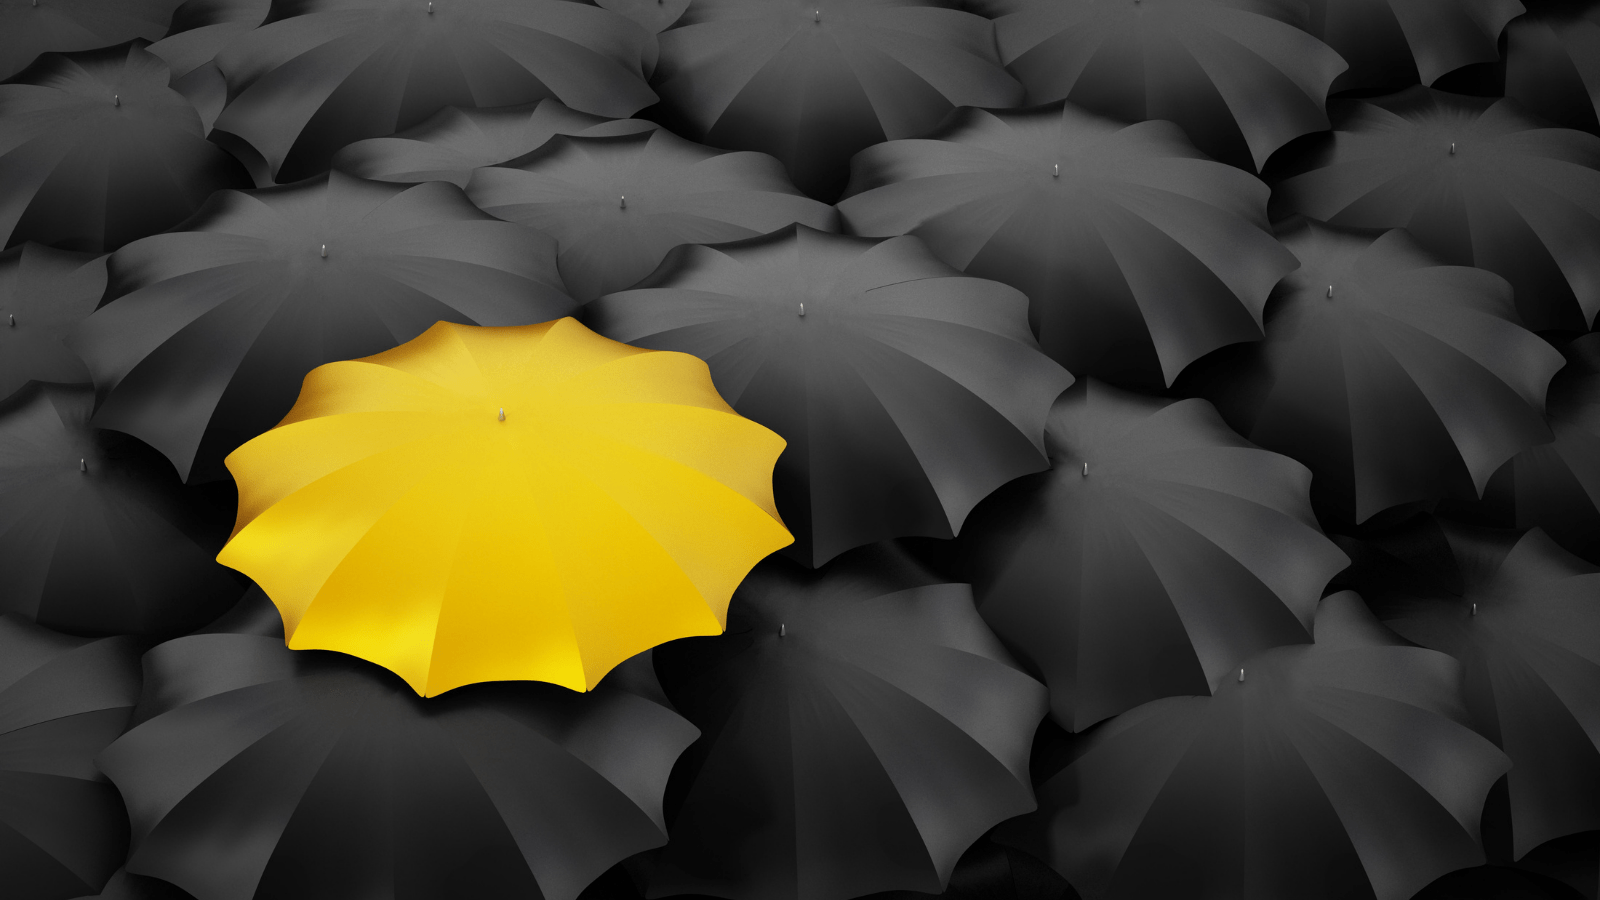 One bright yellow umbrella among a sea of black umbrellas.